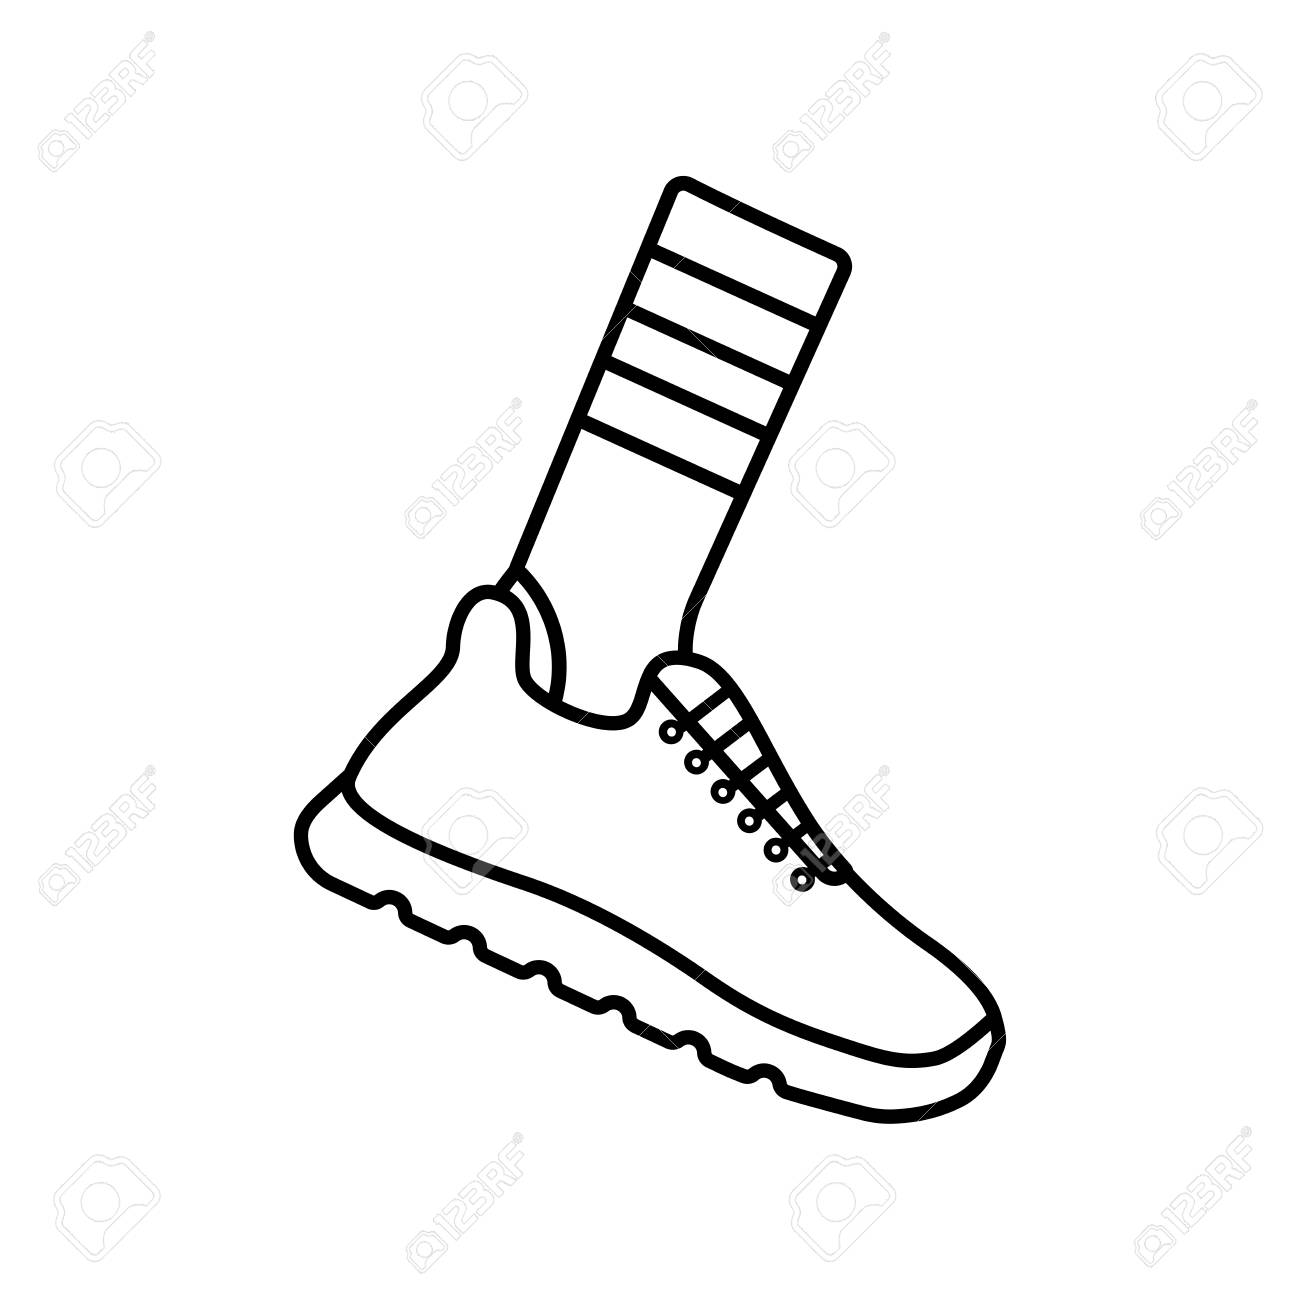 hight resolution of vector illustration icon of socks and sport running shoes sneakers black outline